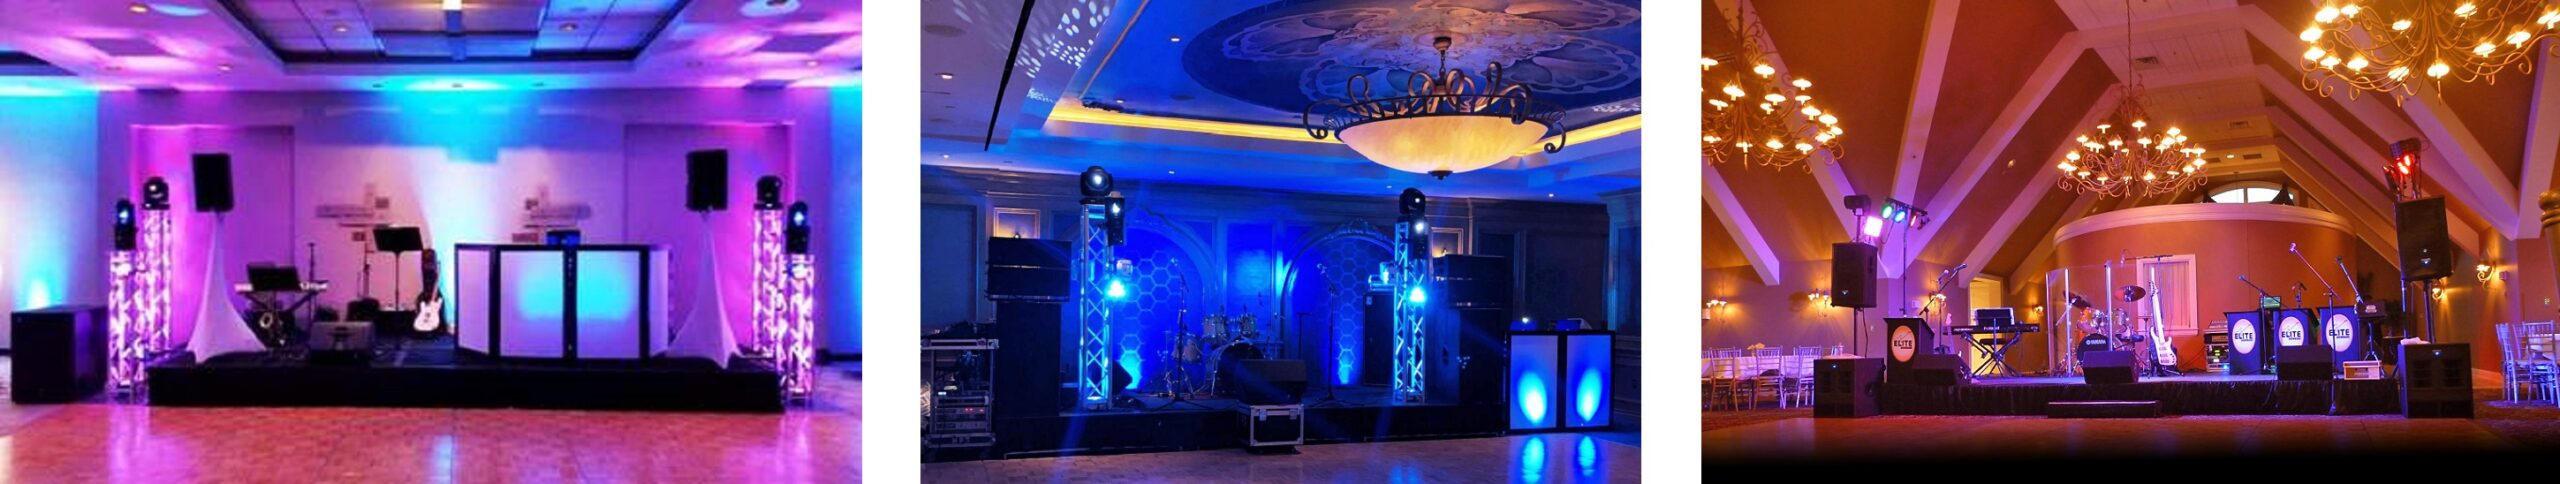 Houston Sound Reinforcement, Stage, Audio, engineer, technician, Sound system, Live music, band, monitors, speakers, subwoofers, Houston DJ, DJs in Houston, Sonido DJ Sammy De Houston, Awesome Music Entertainment, Awesome Event Pros, AME DJs